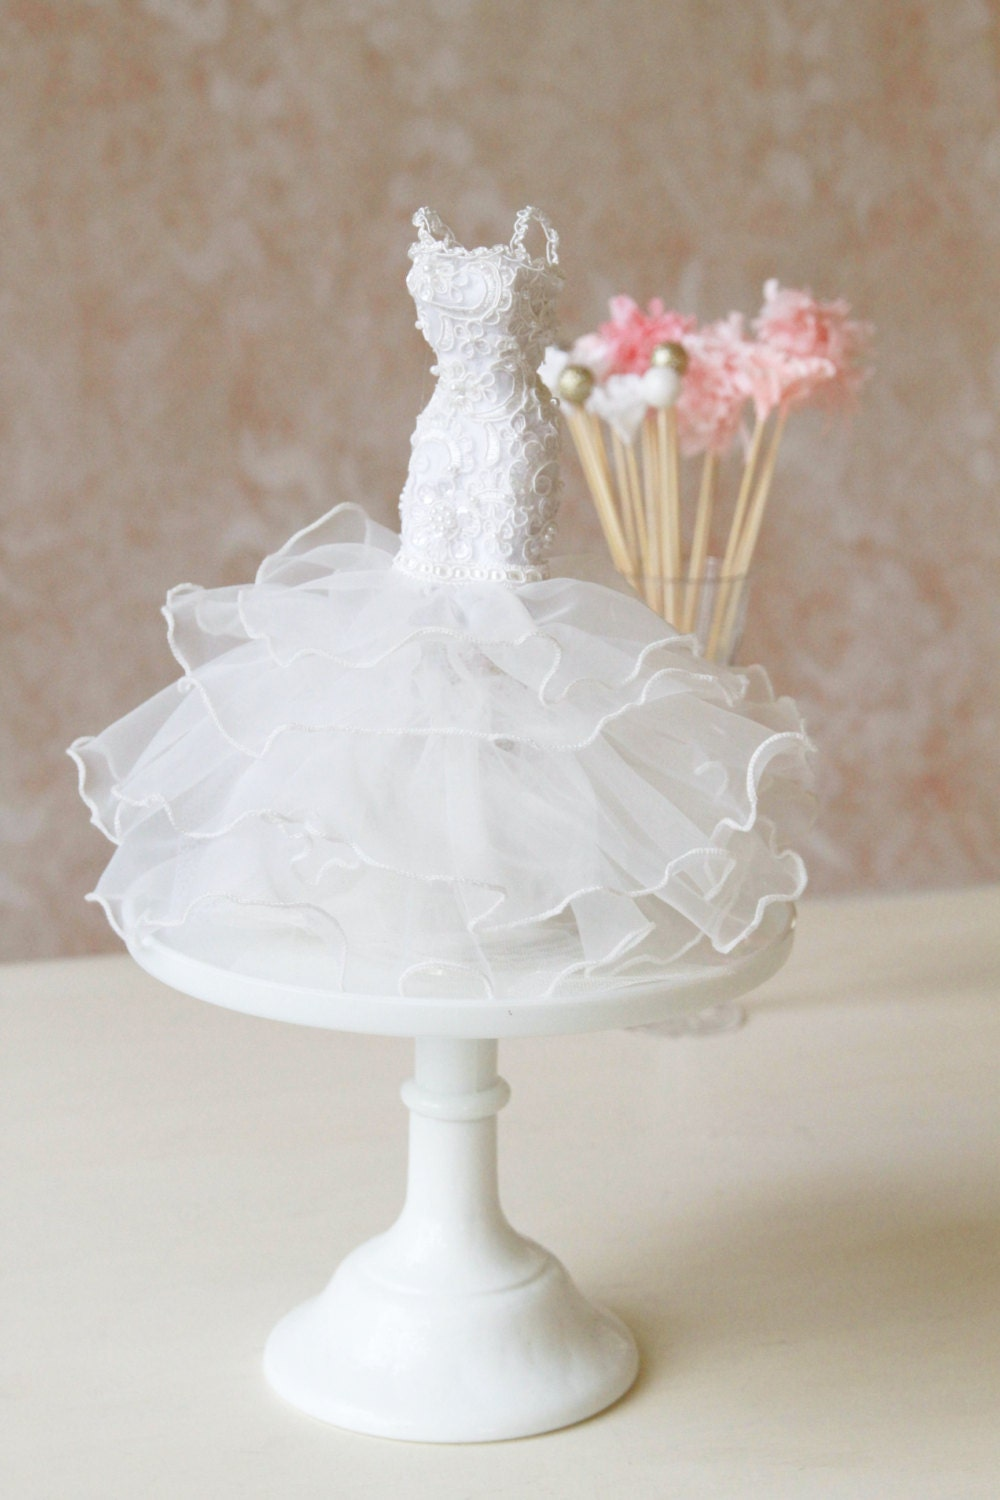 Bridal shower centerpiece mermaid gown couture wedding dress Wedding shower centerpieces